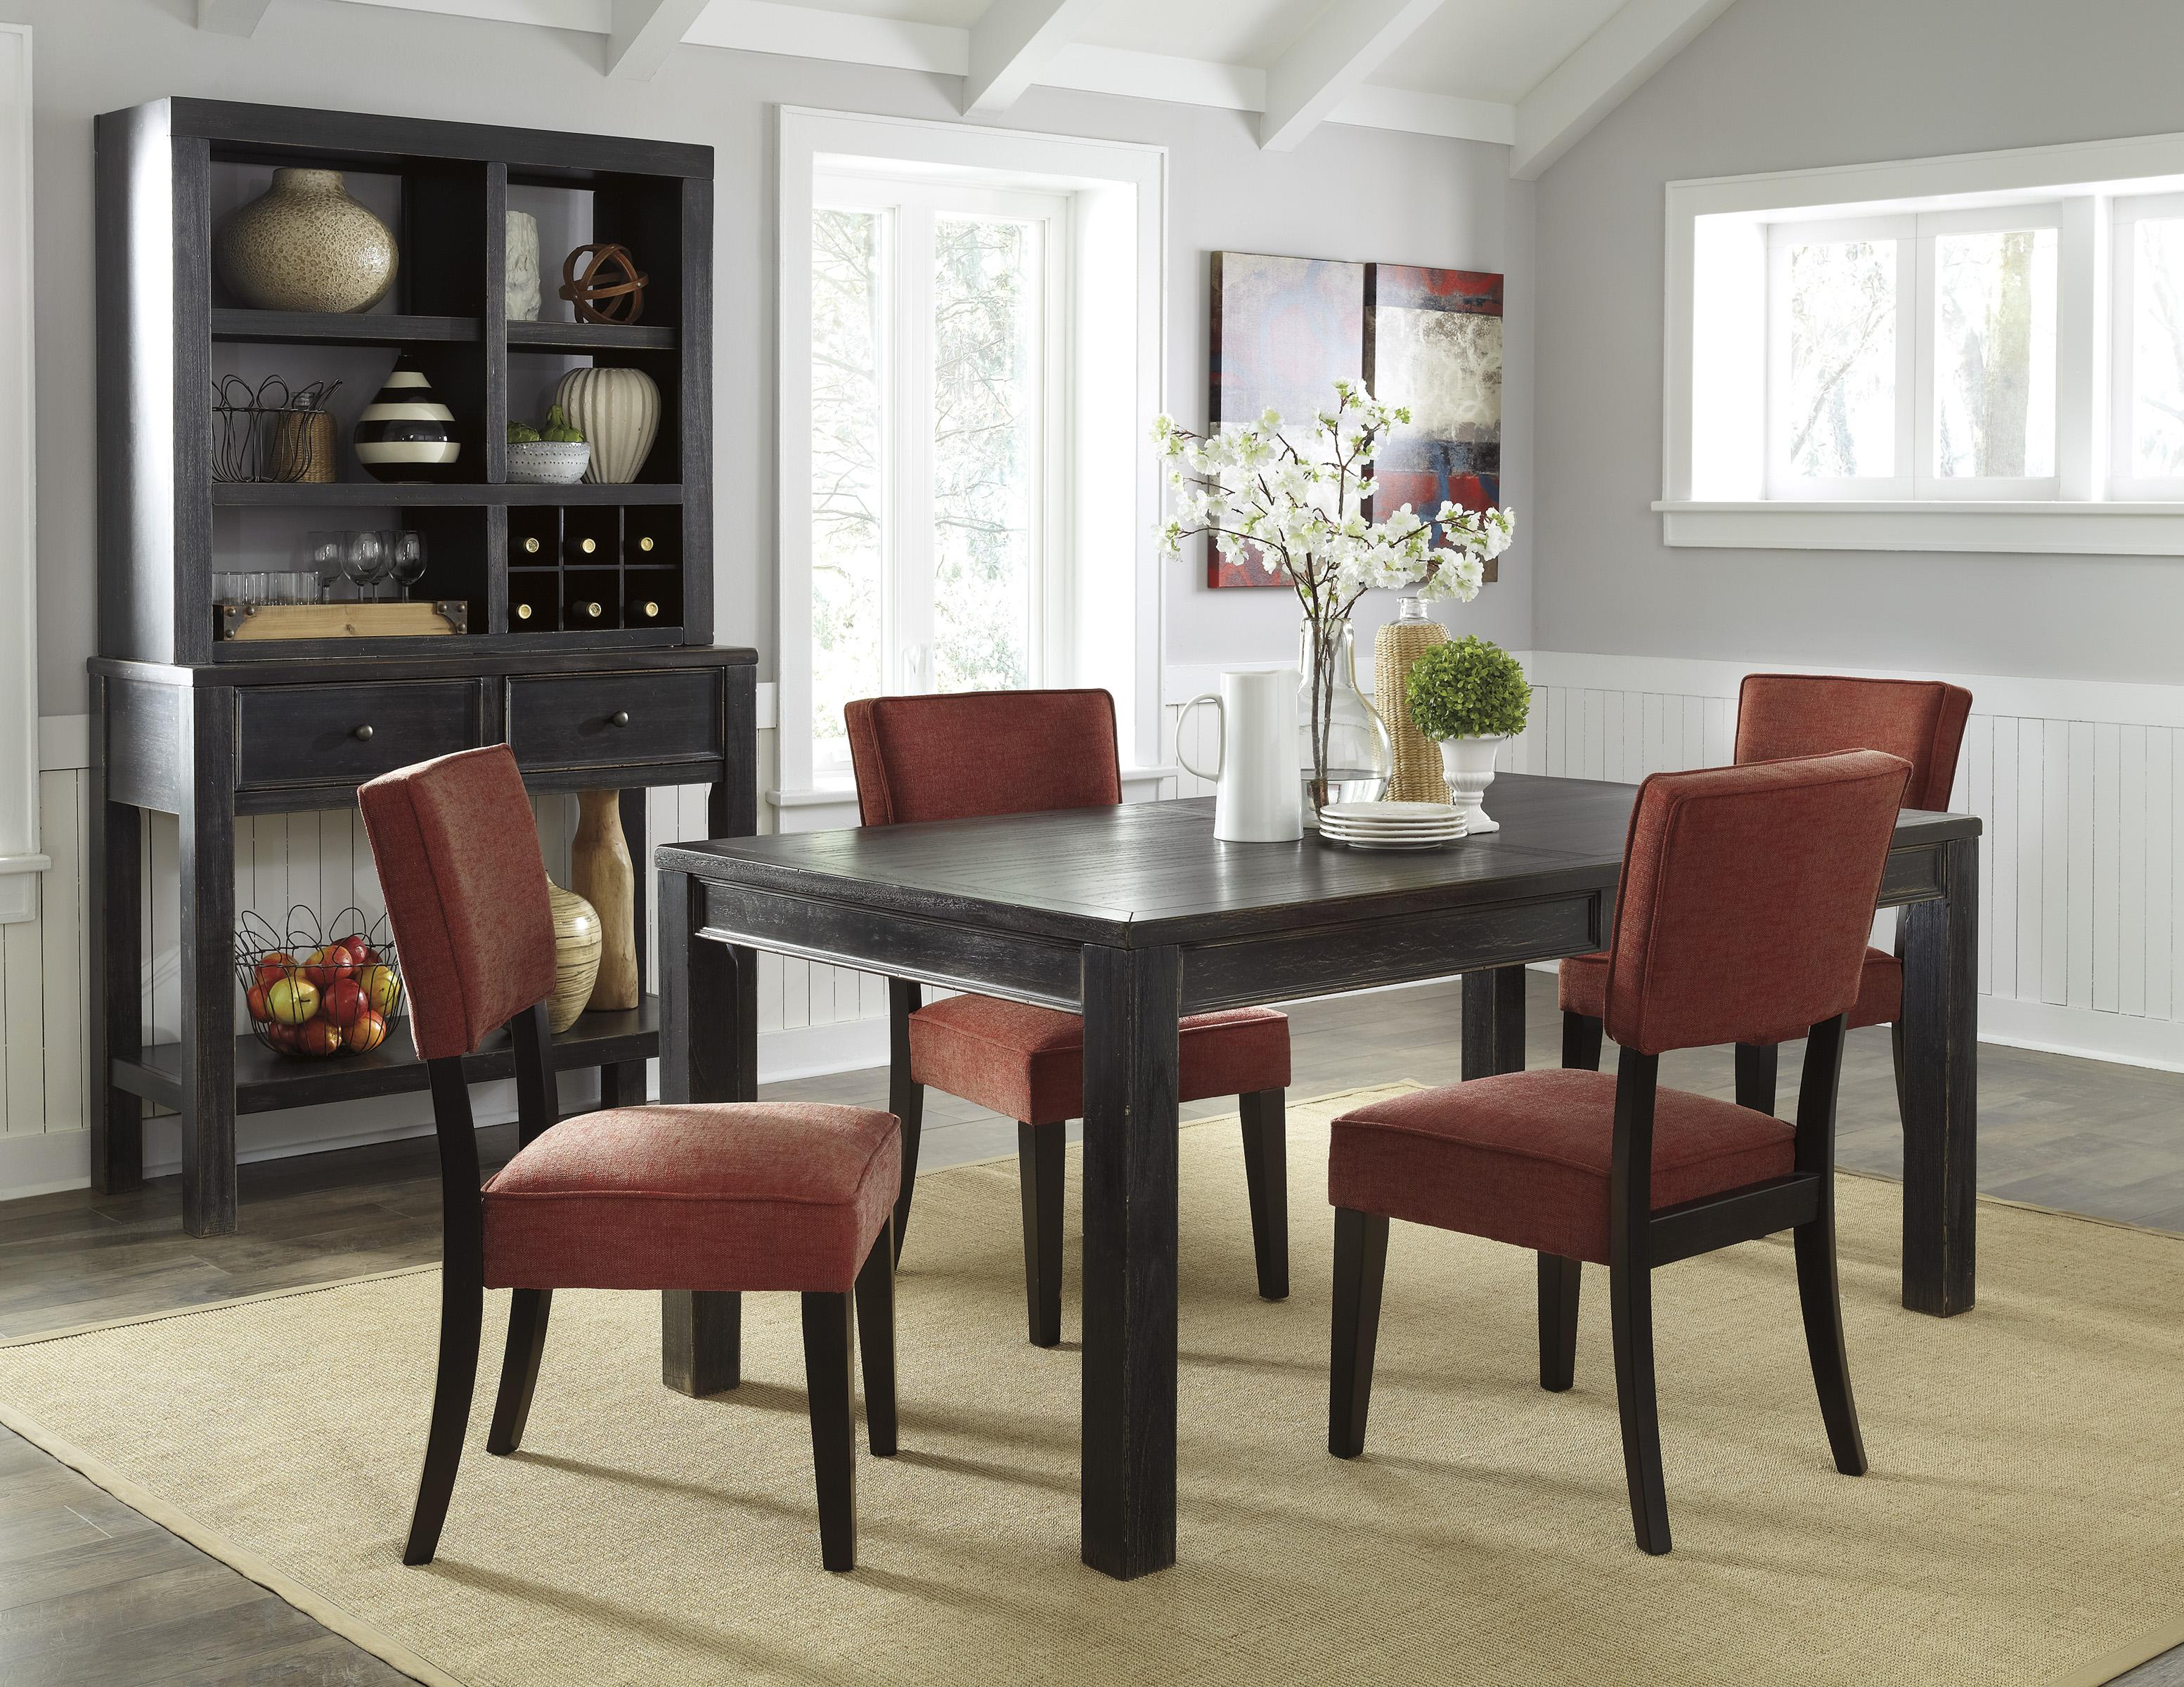 Signature Design by Ashley Gavelston Casual Dining Room Group - Item Number: D532 Dining Room Group 4